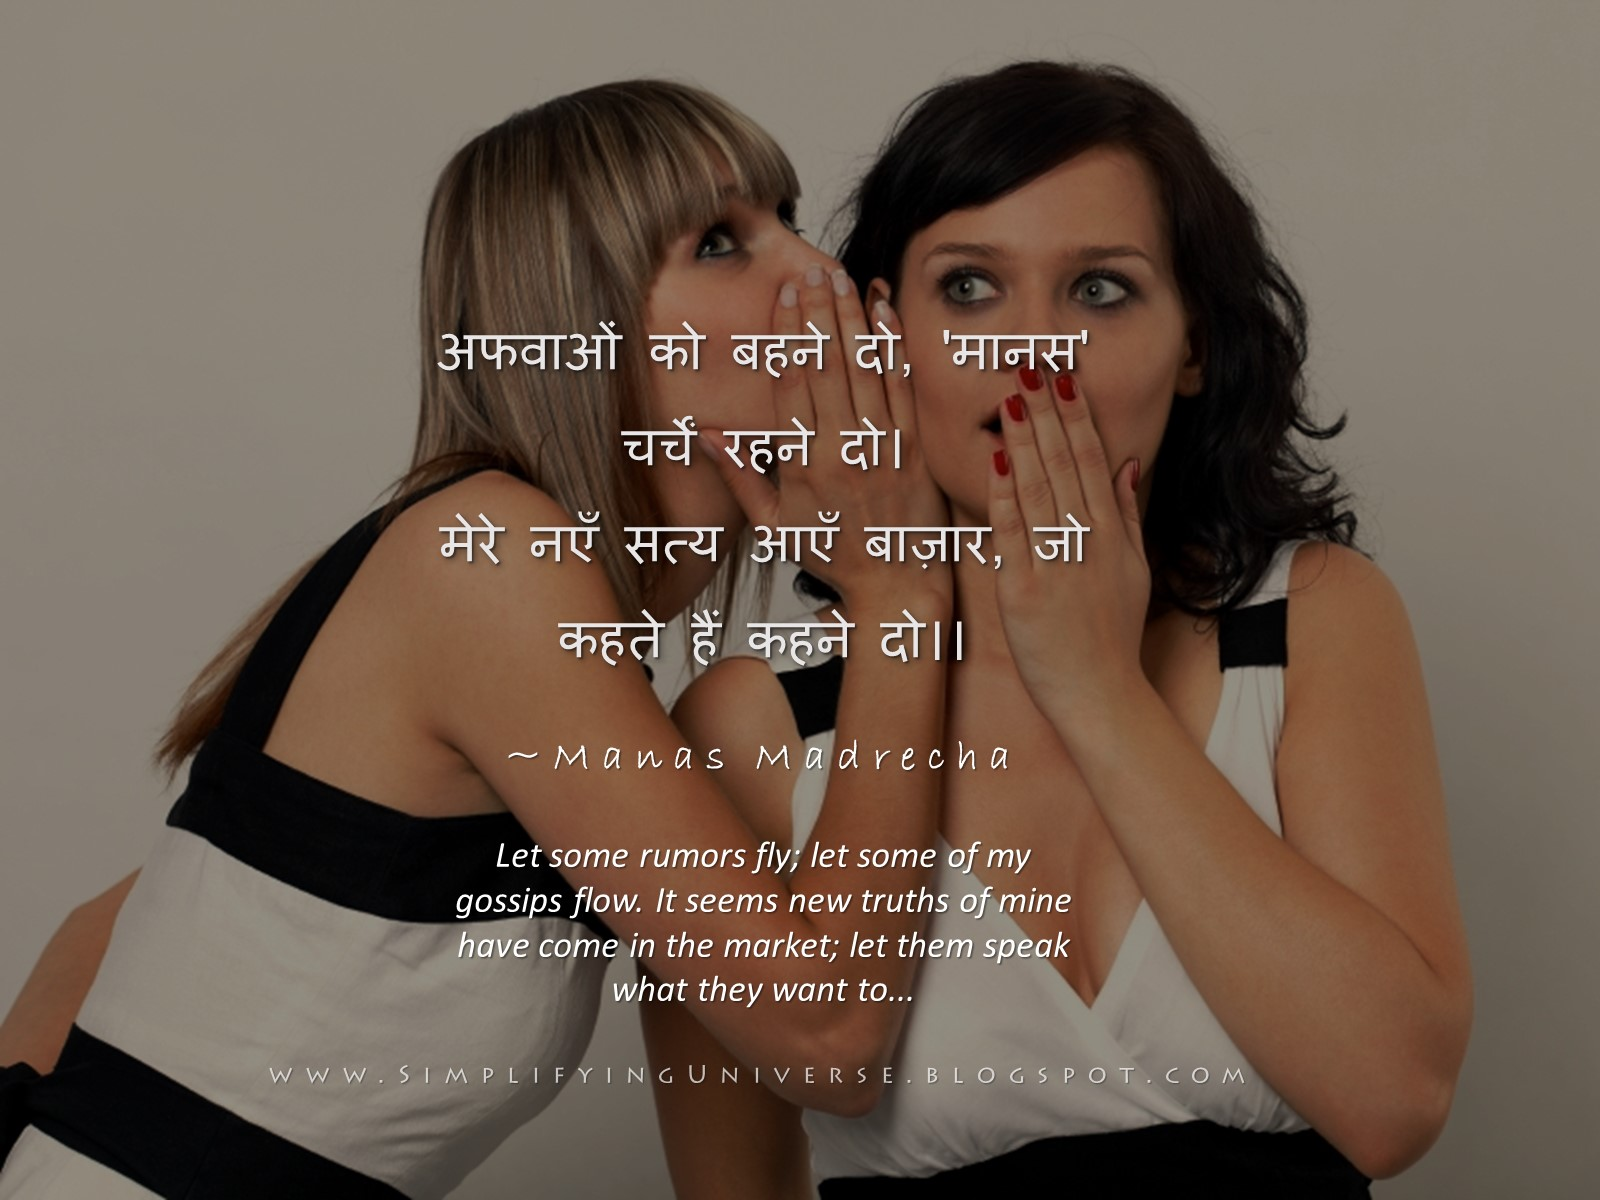 woman gossip, rumors, women talking to each other in ear, blonde and brunette women, hindi poem on criticism, manas madrecha, hindi quotes on criticism rumors, beautiful attractive women, simplifying universe, india mumbai blog, self help hindi poet